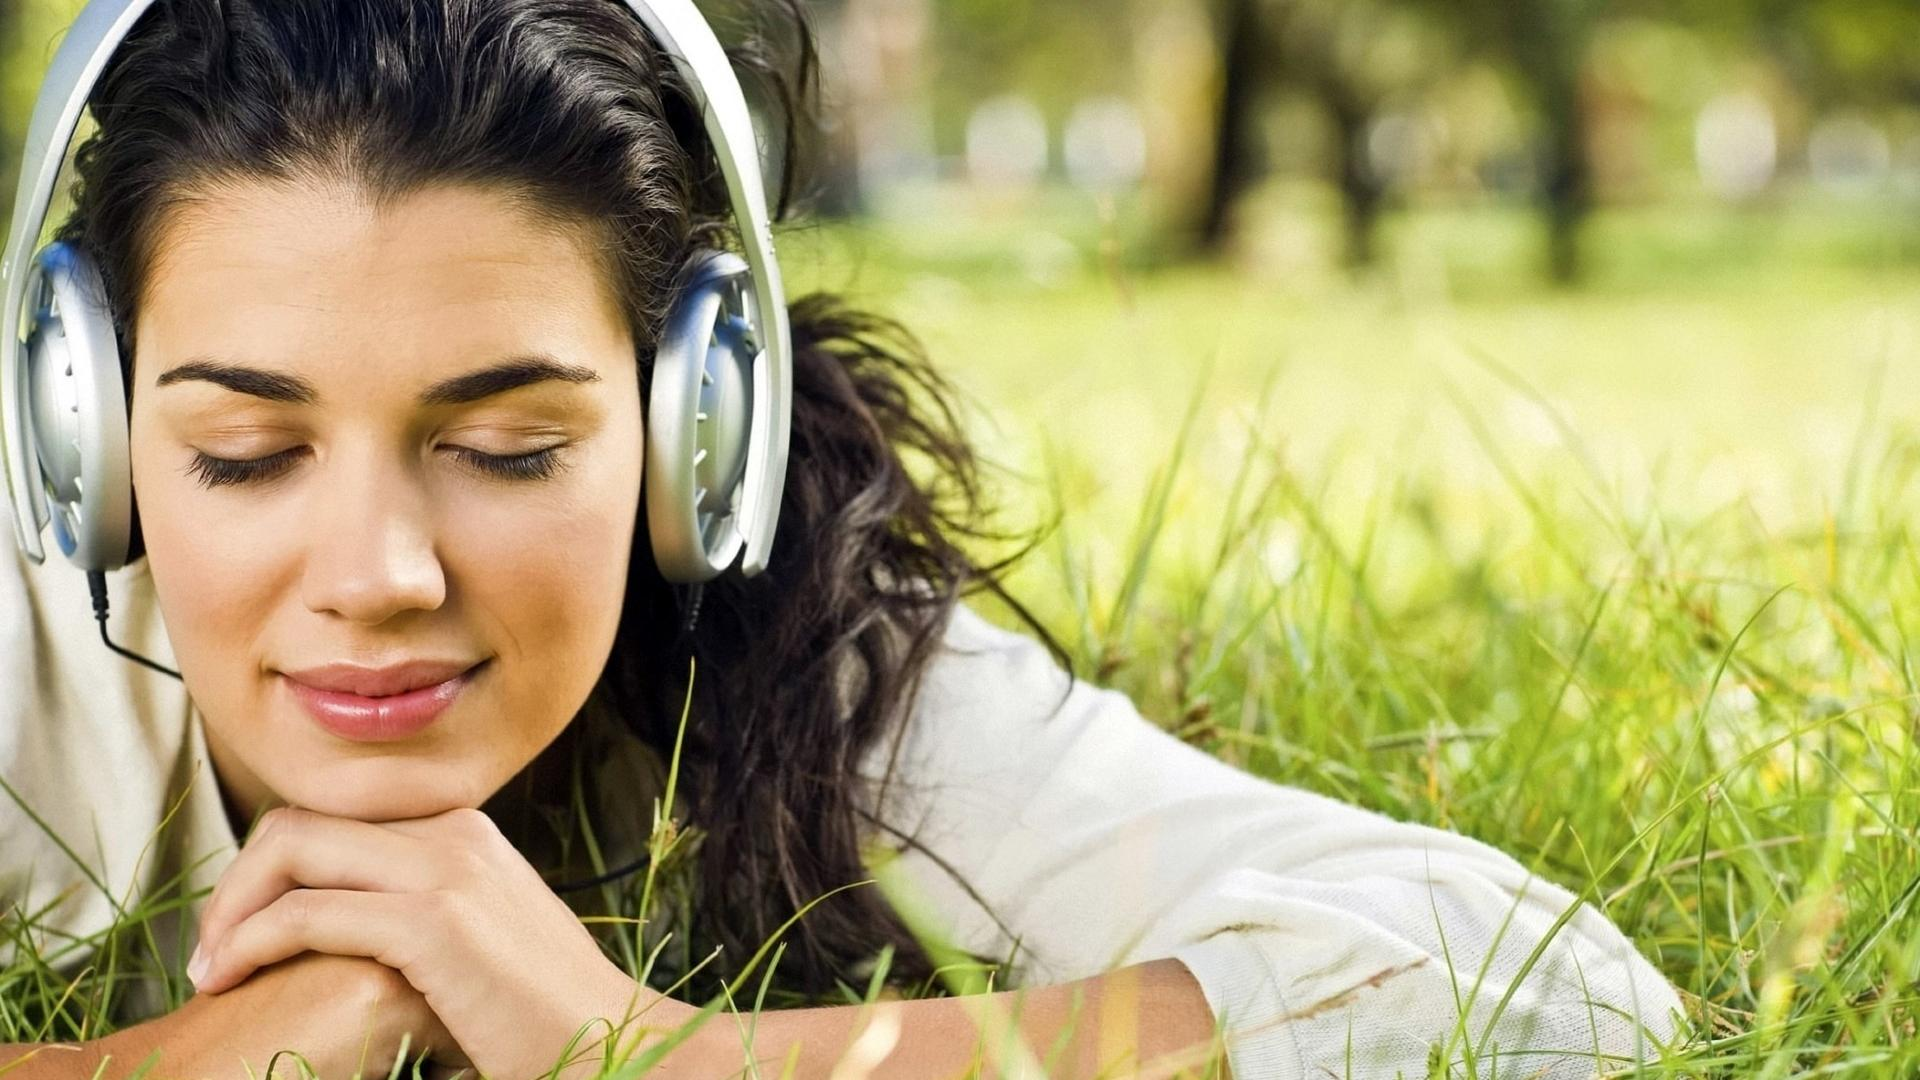 Music Therapy: How Classical Music can help improve your mental well-being